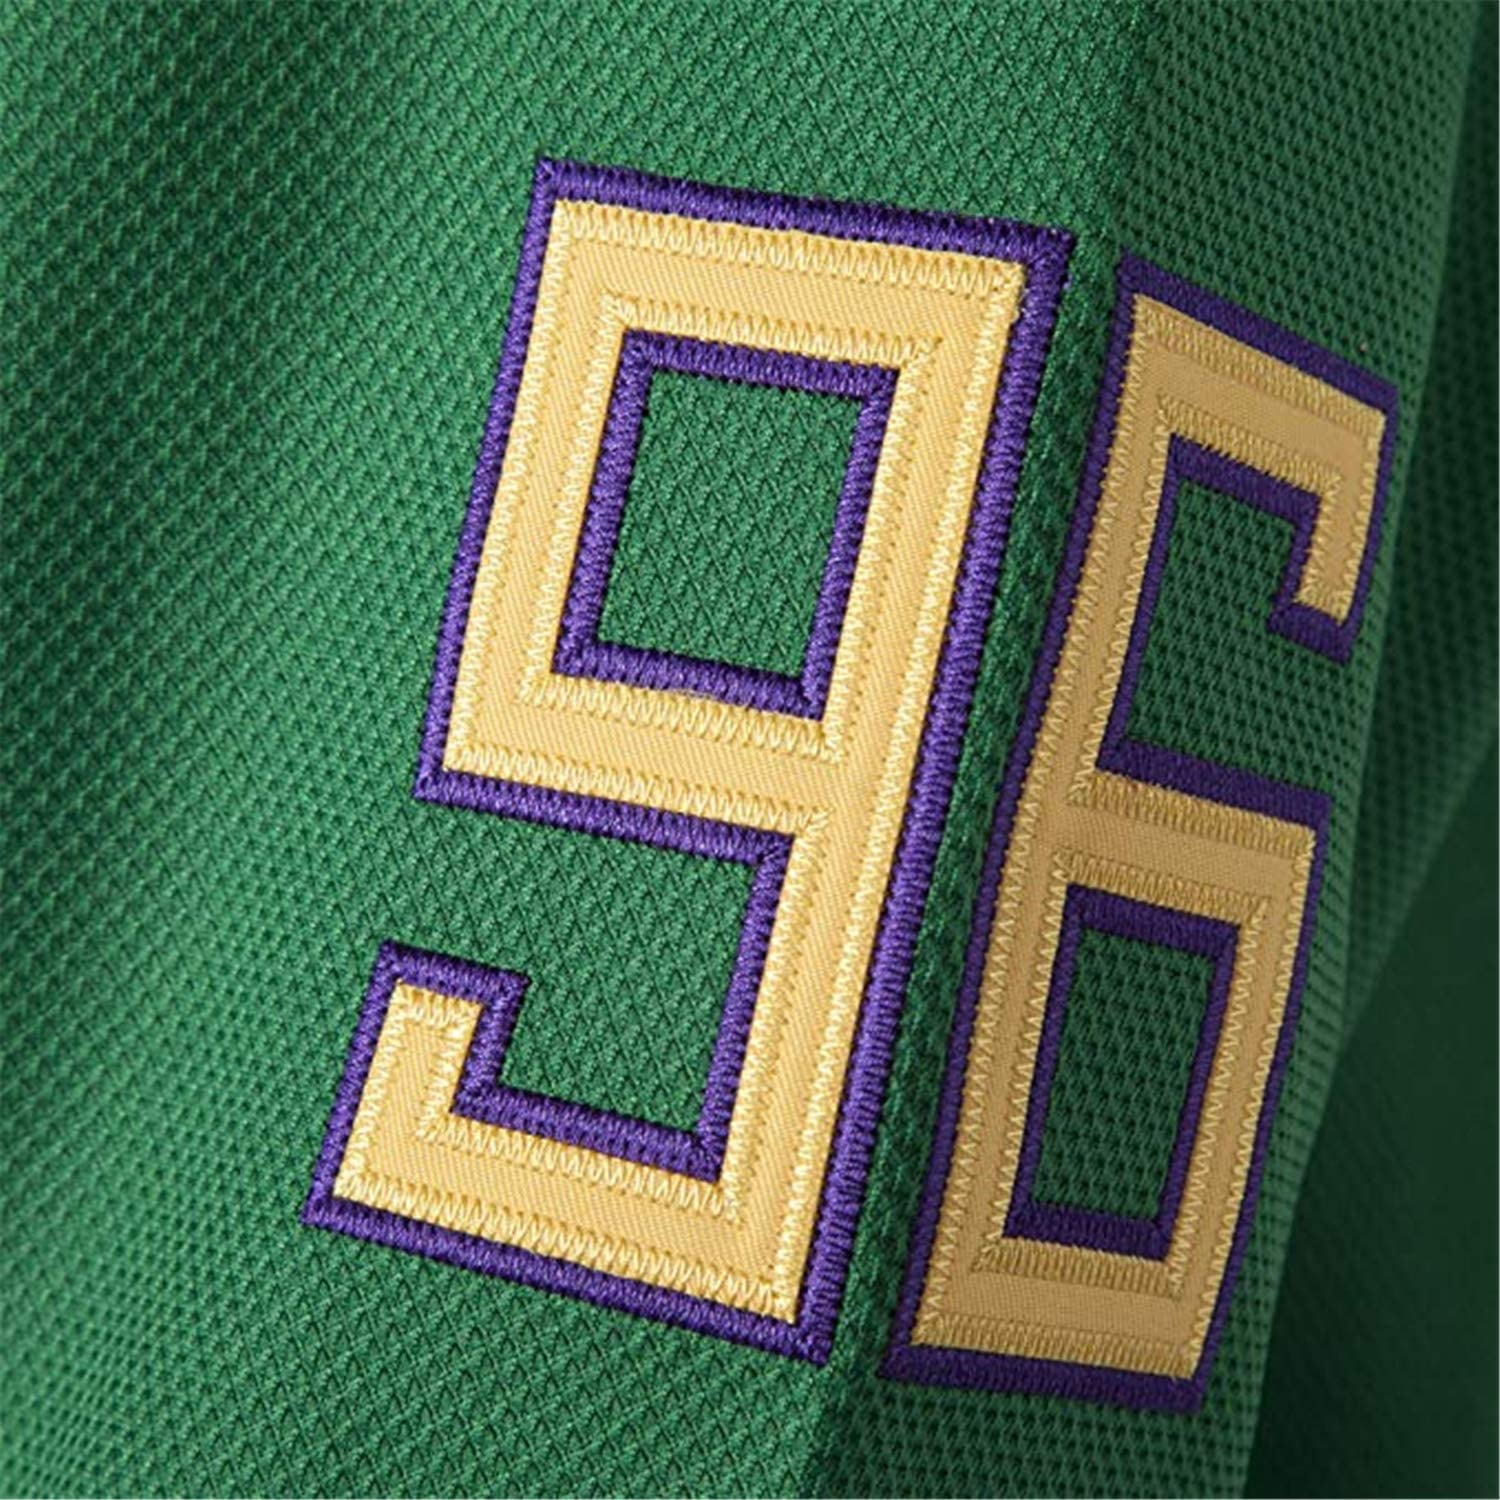 Charlie Conway 96 The Mighty Ducks Jersey S-XXXL Green White 90S Hip Hop Clothing for Stitched